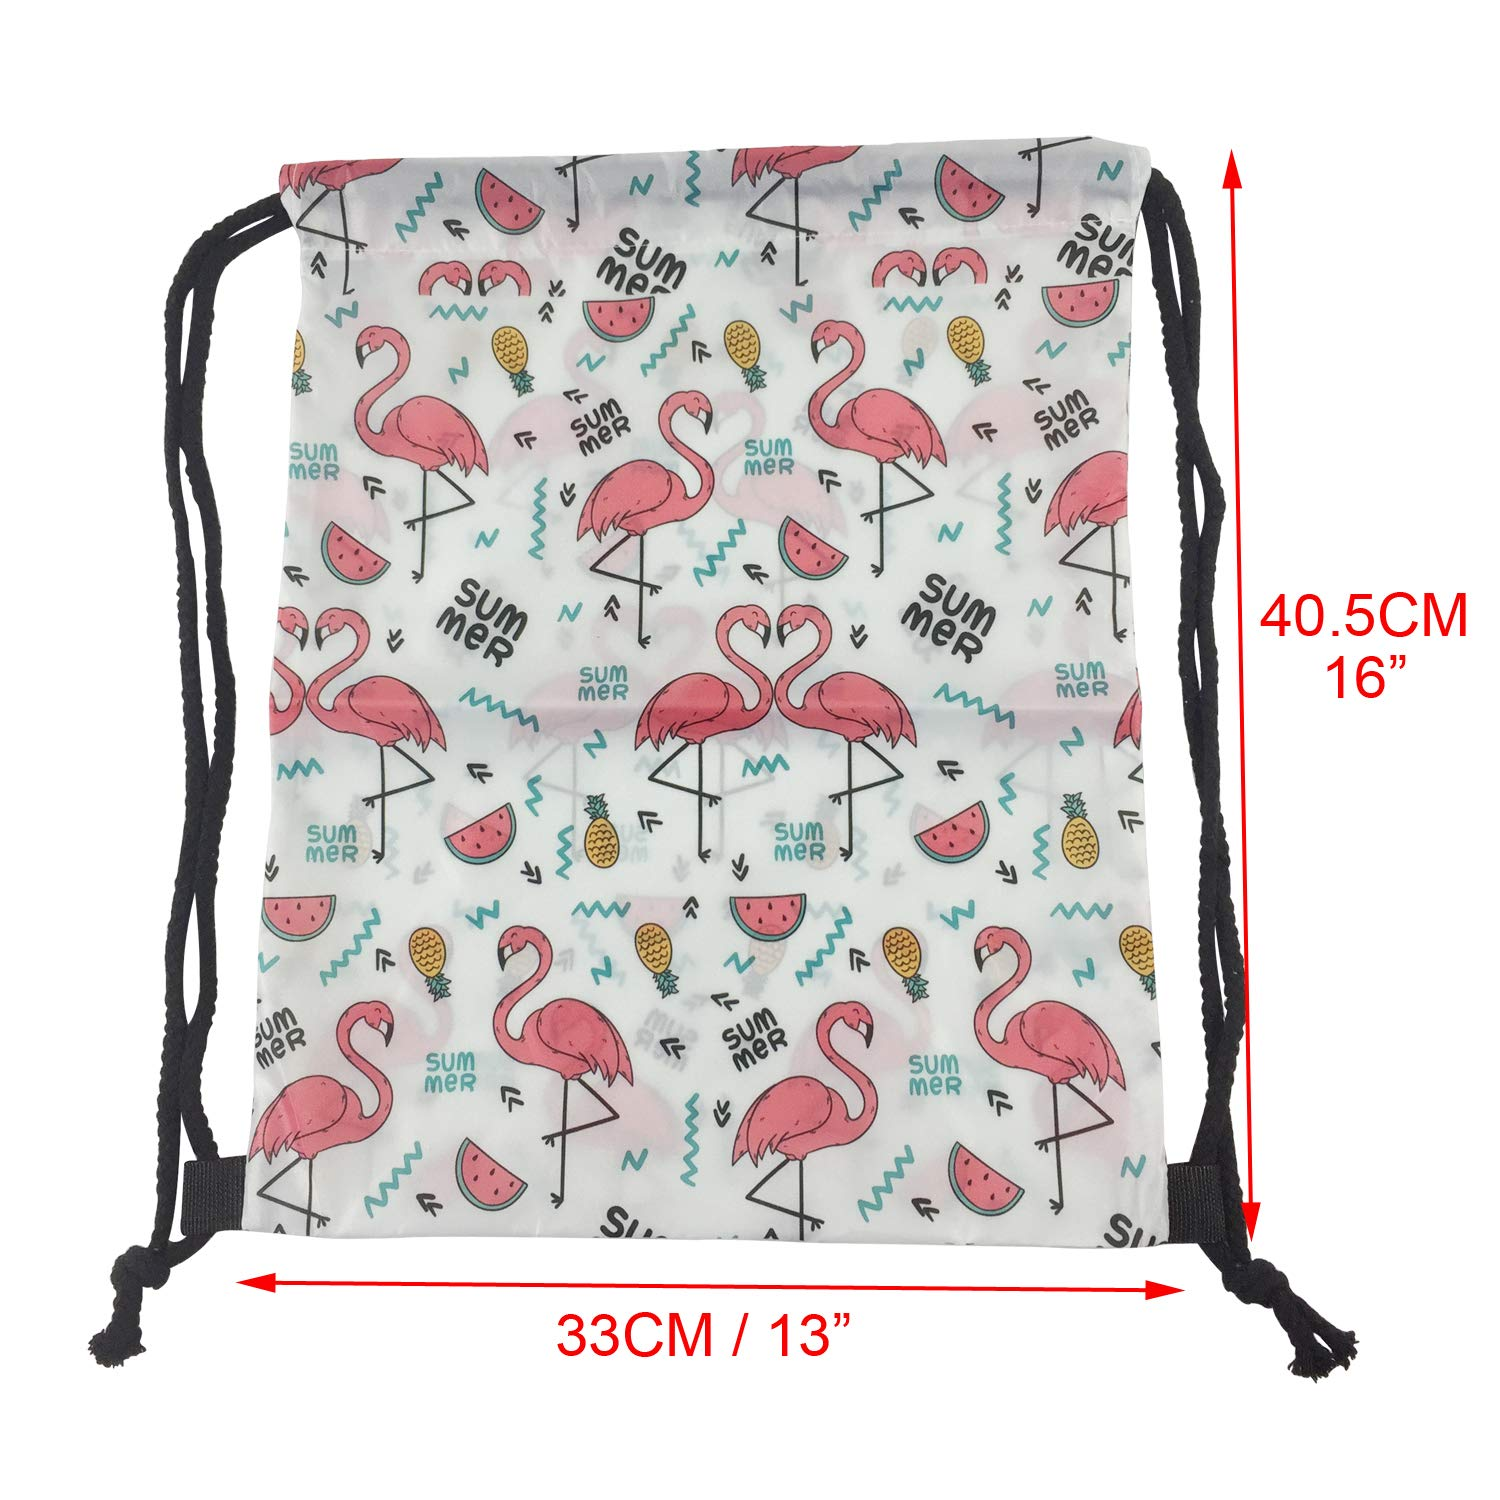 Portable polyester reusable designer waterproof cute Draw String bag for promotional gift